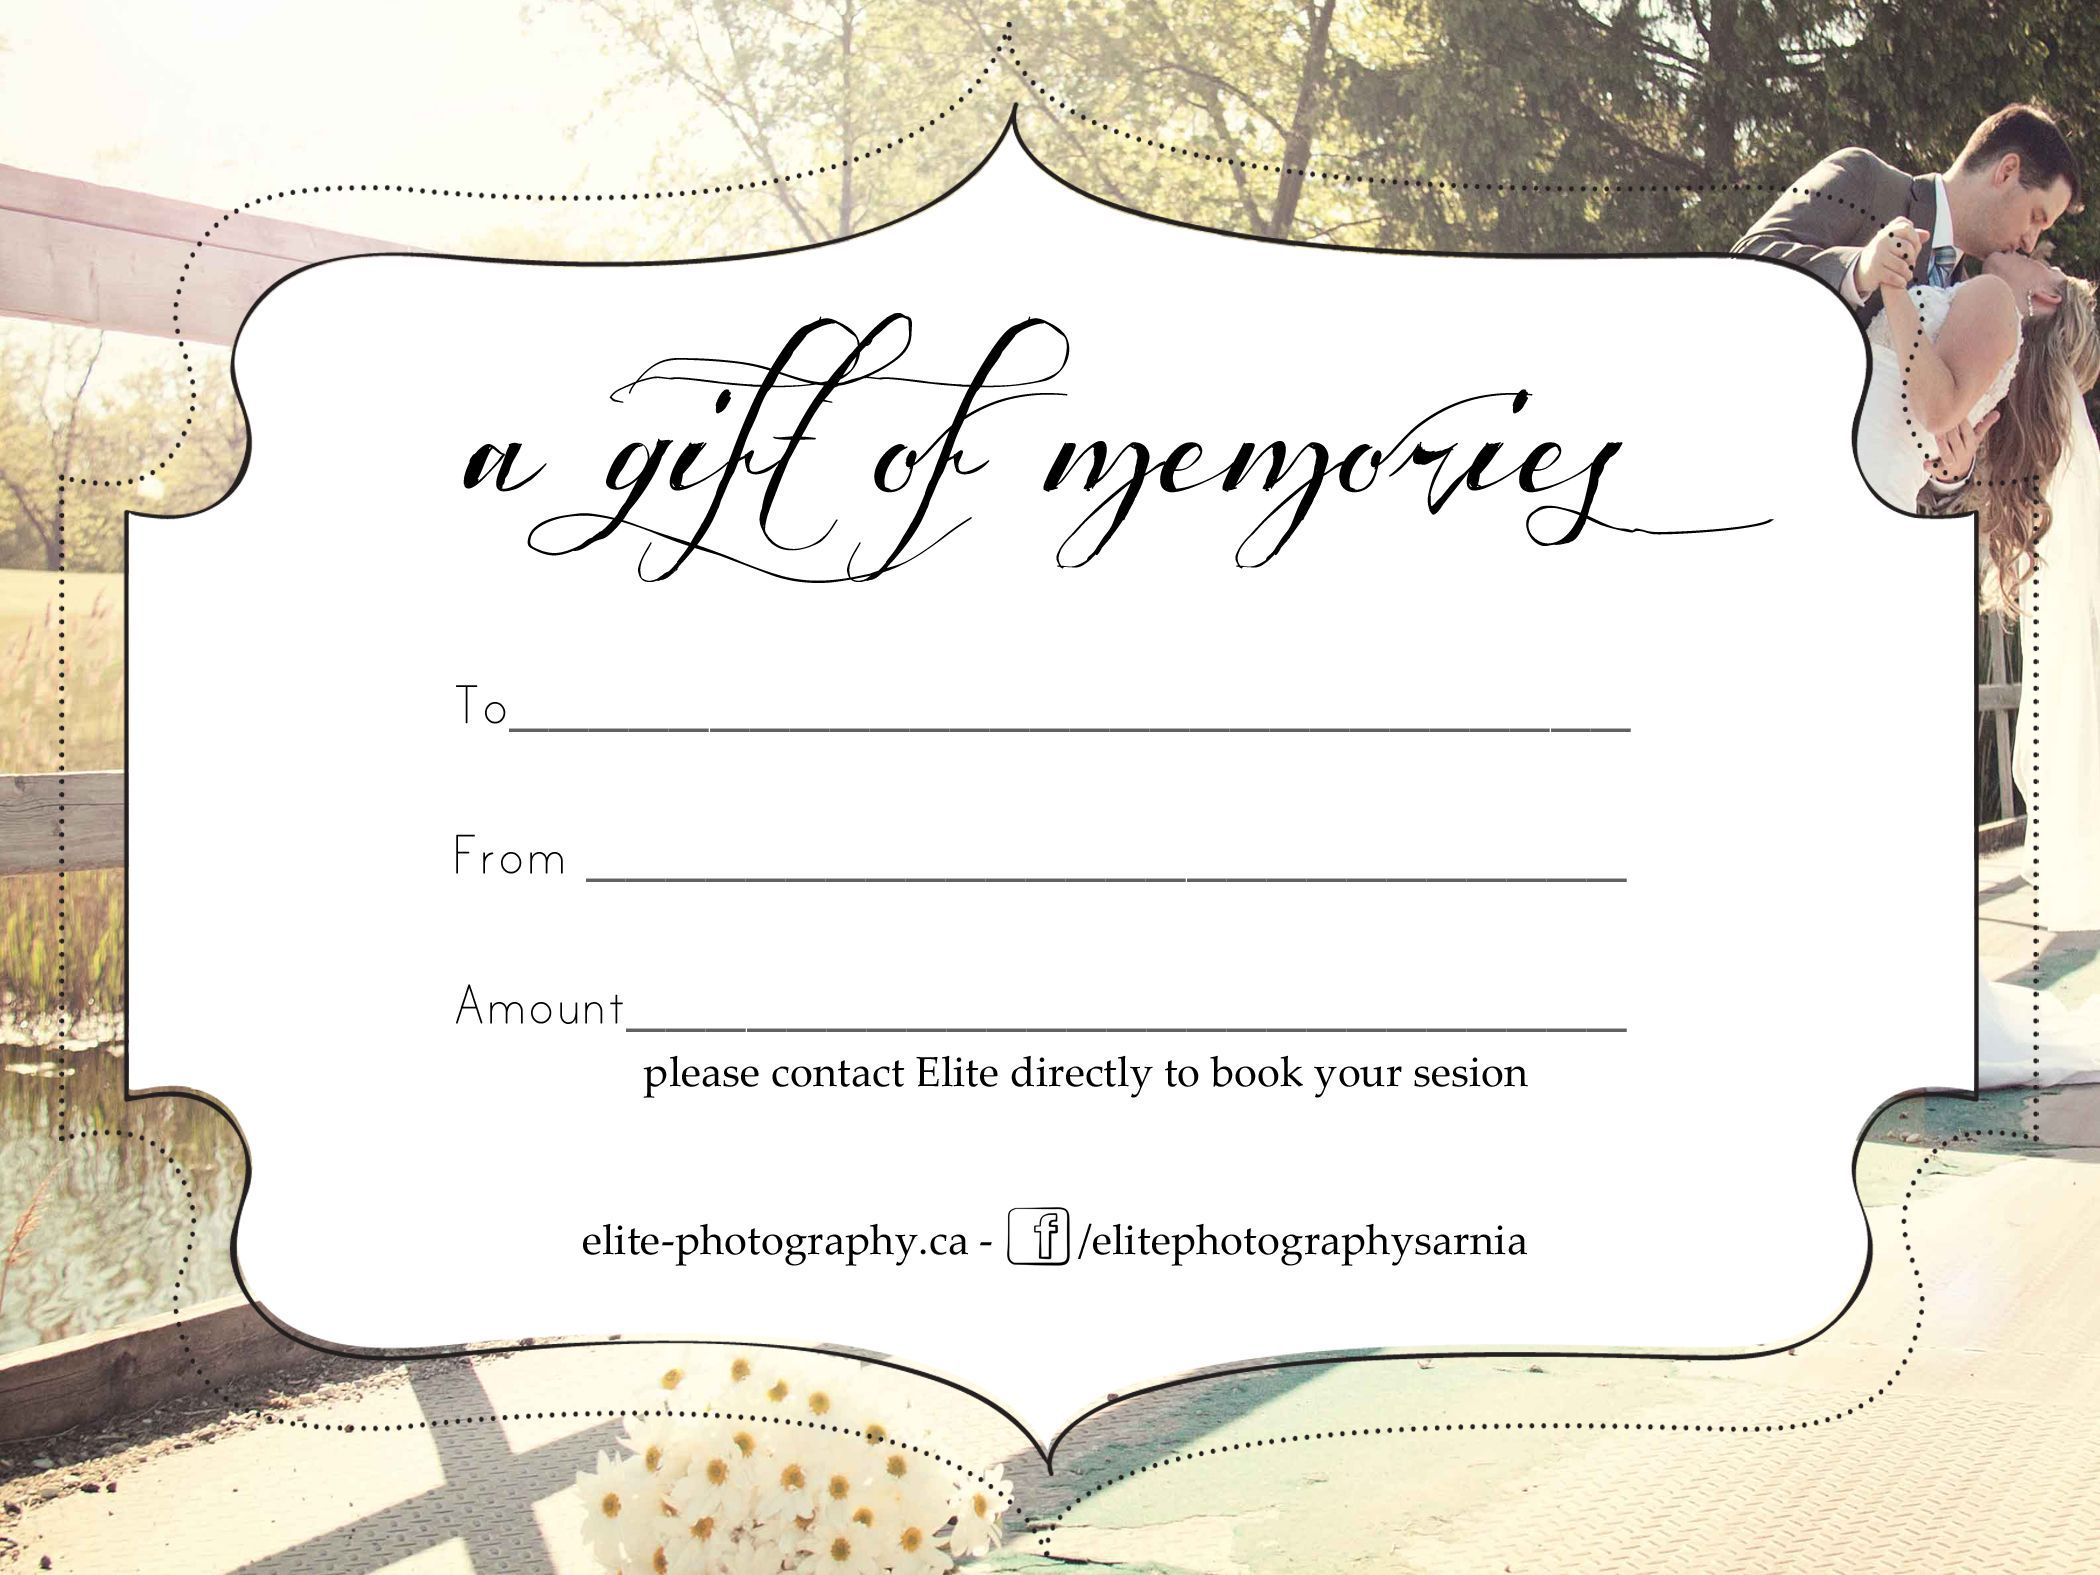 005 Awesome Photography Gift Certificate Template Photoshop Free High Resolution Full